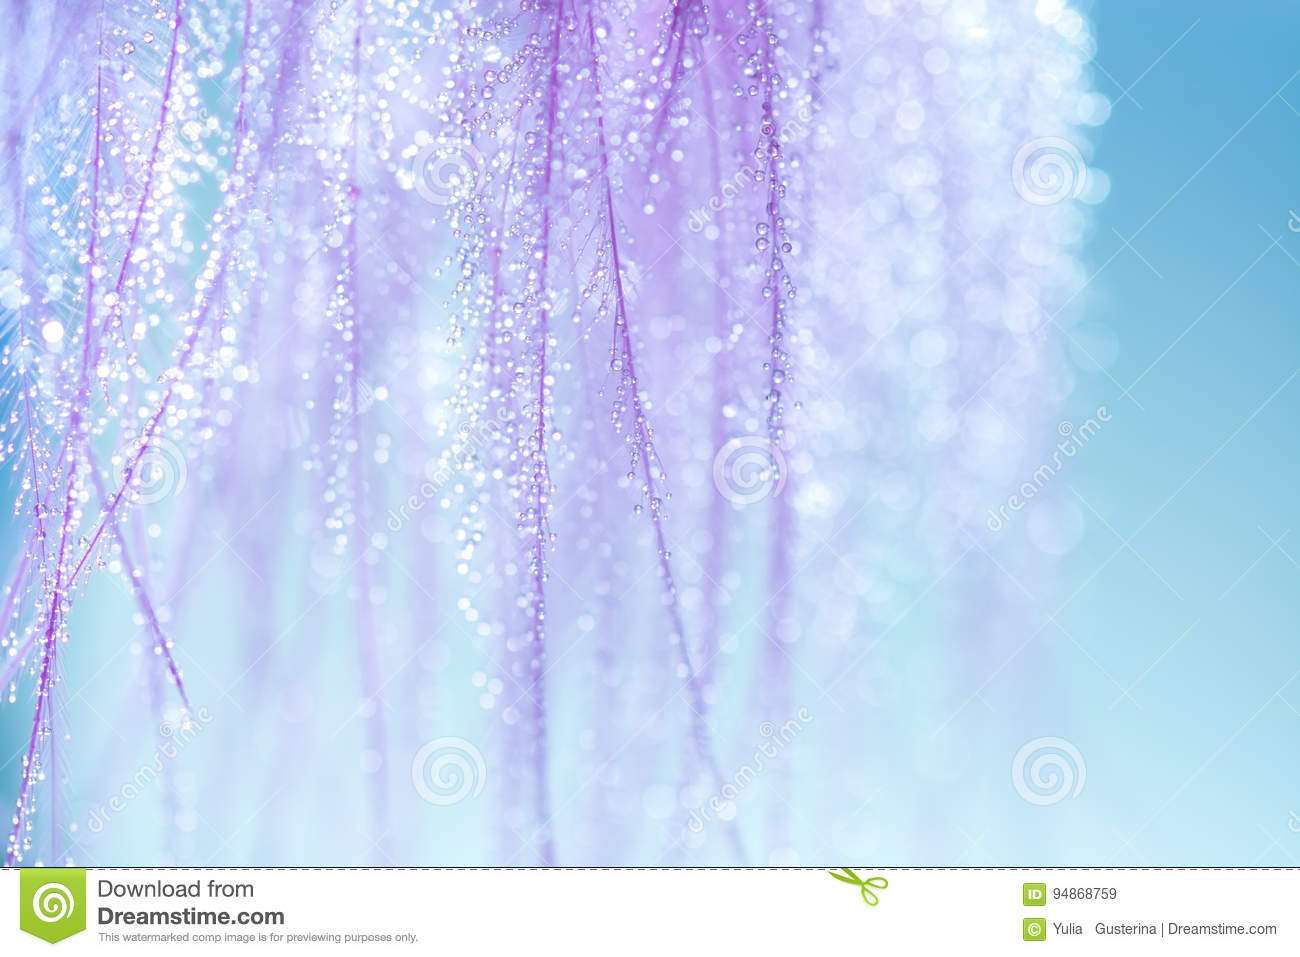 Purple feathers with small drops of water on a blue background. Very gentle and beautiful background of feathers. Macro